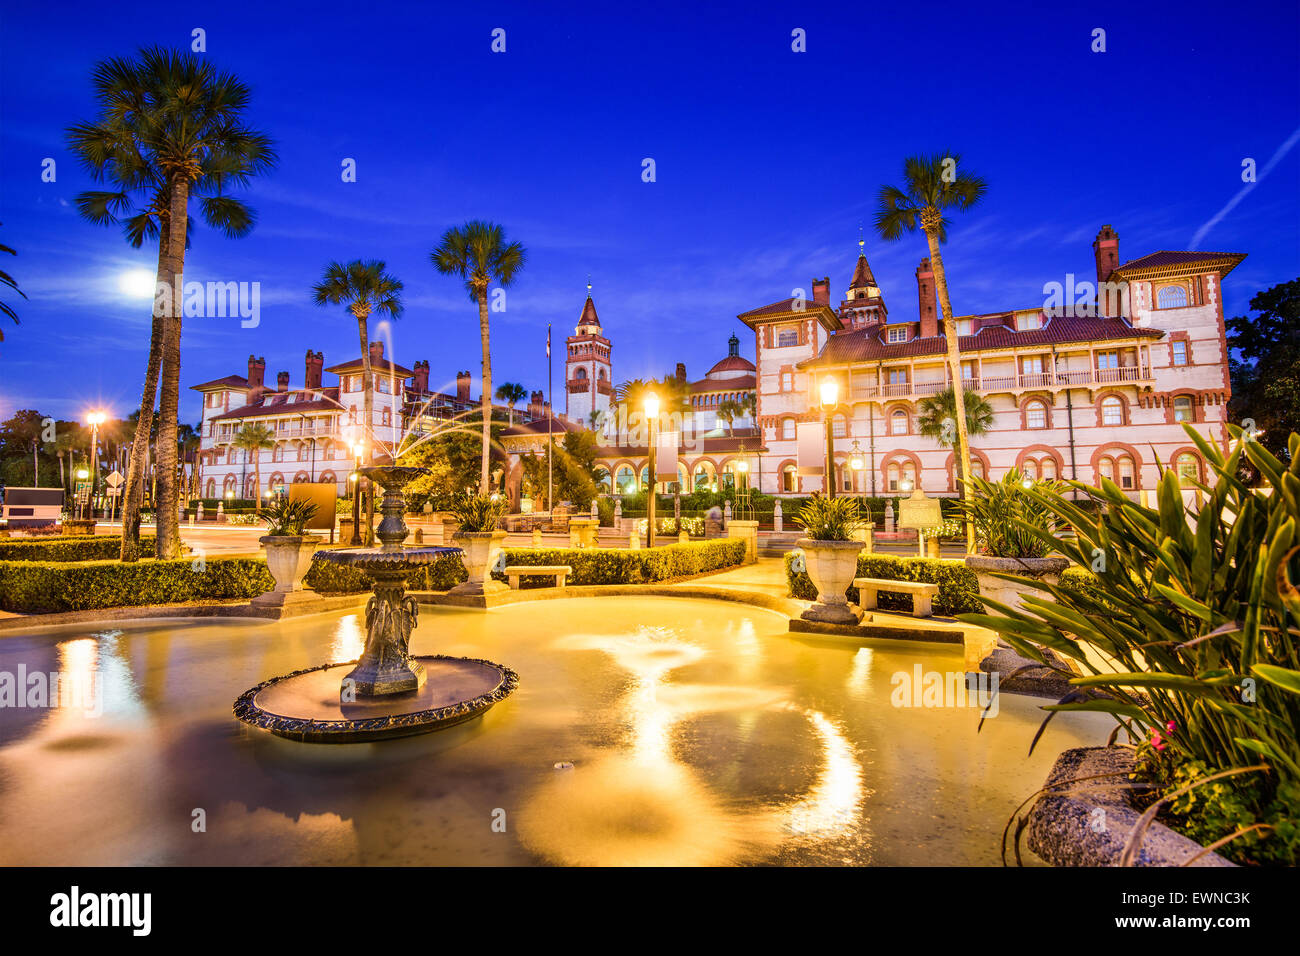 St. Augustine, Florida, USA downtown at Flagler College. - Stock Image